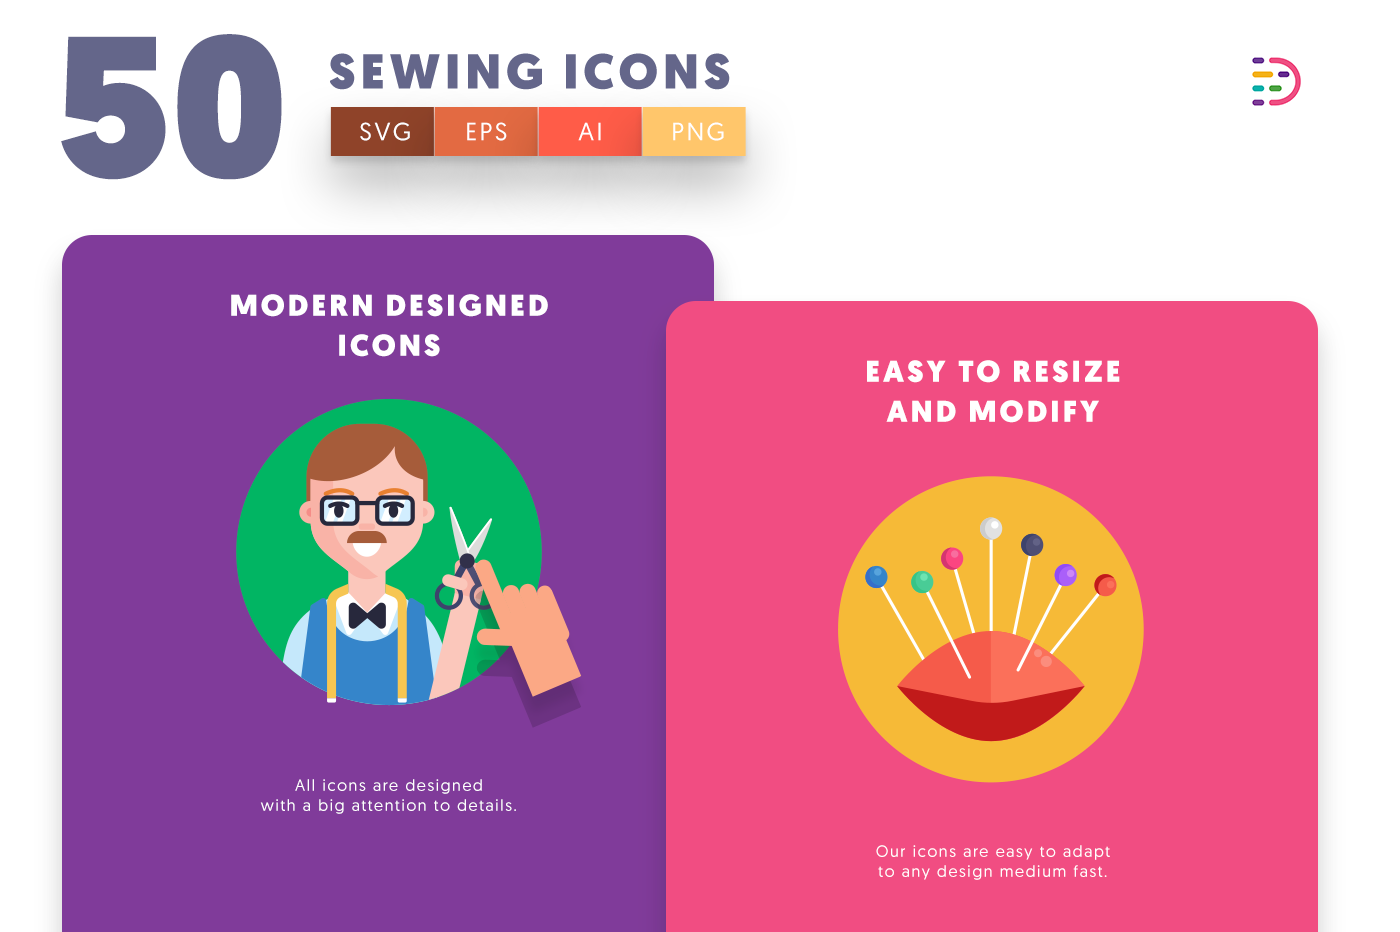 Sewing icons png/svg/eps